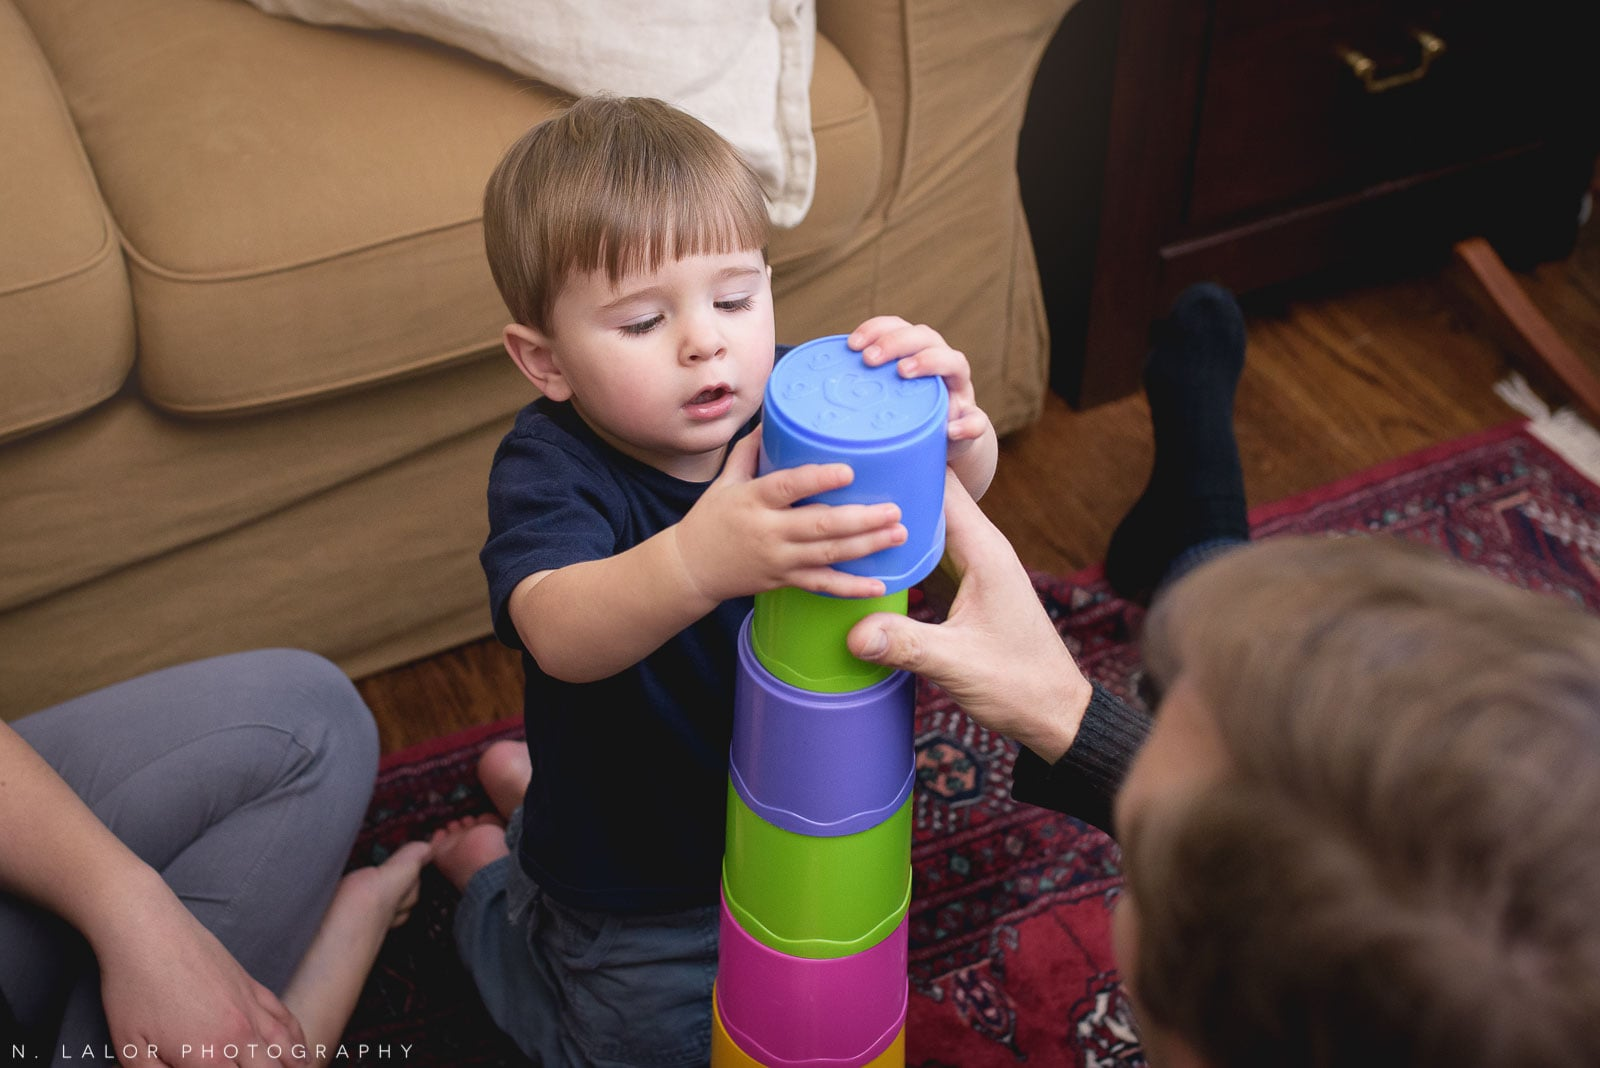 2-year old toddler playing with stacking cups. Lifestyle portrait by N. Lalor Photography. Connecticut.